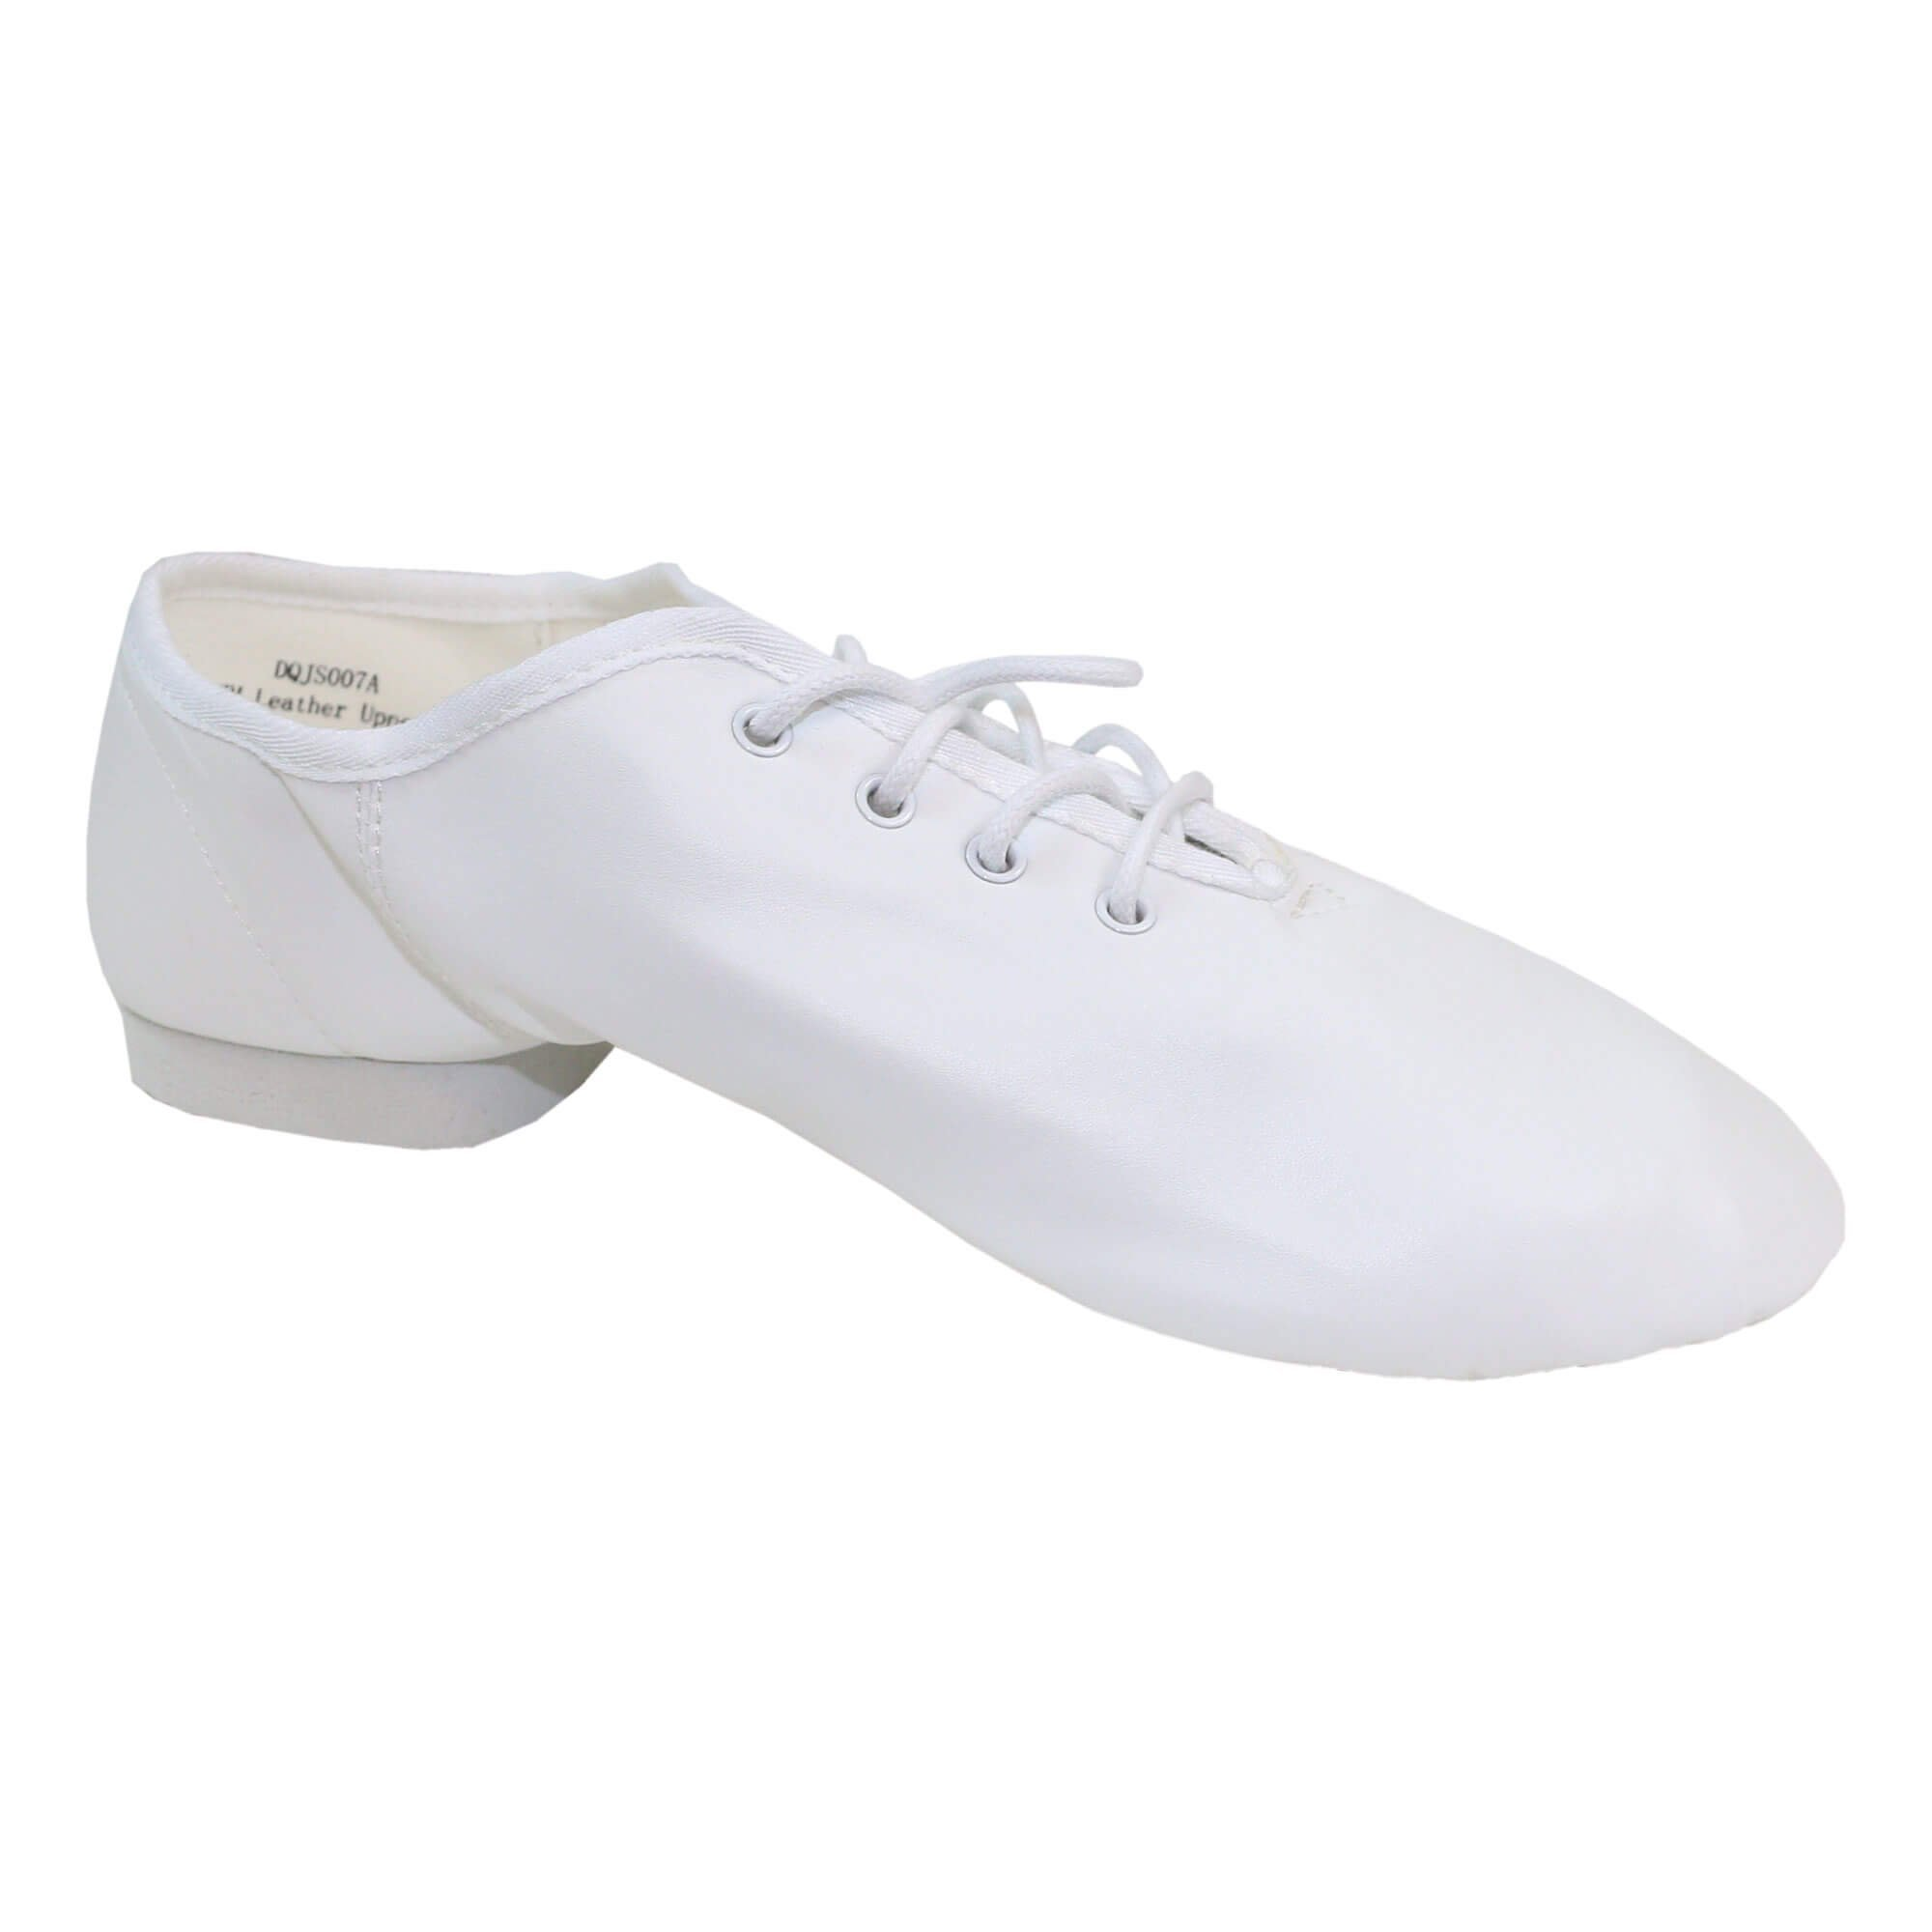 Danzcue Adult Lace up Jazz Shoes